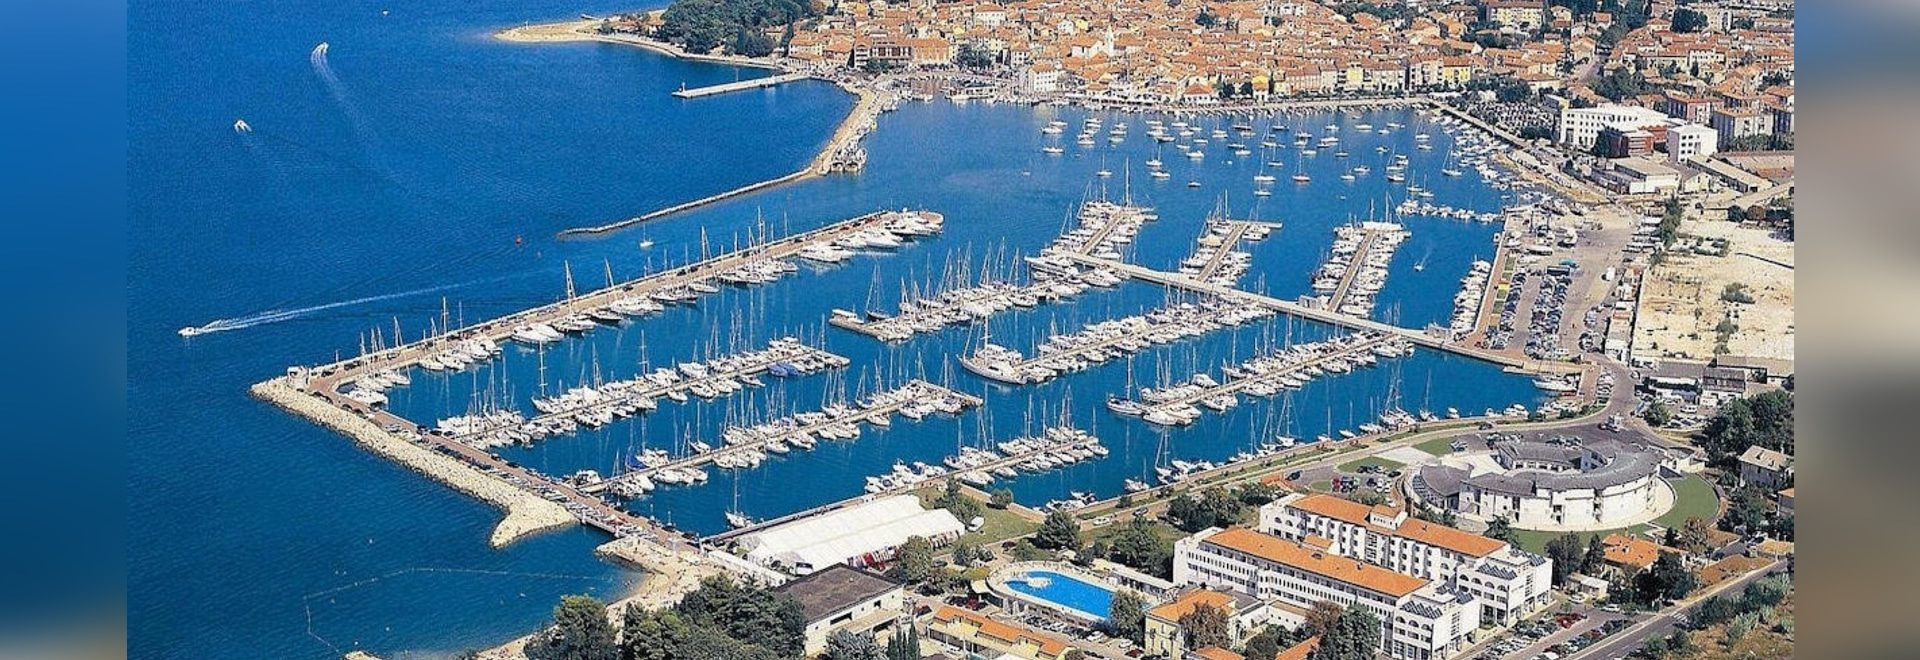 ADRIATIC COAST MARINA STUDY TOUR STRENGTHEN KNOWLEDGE AND BEST PRACTICE EXPERIENCE